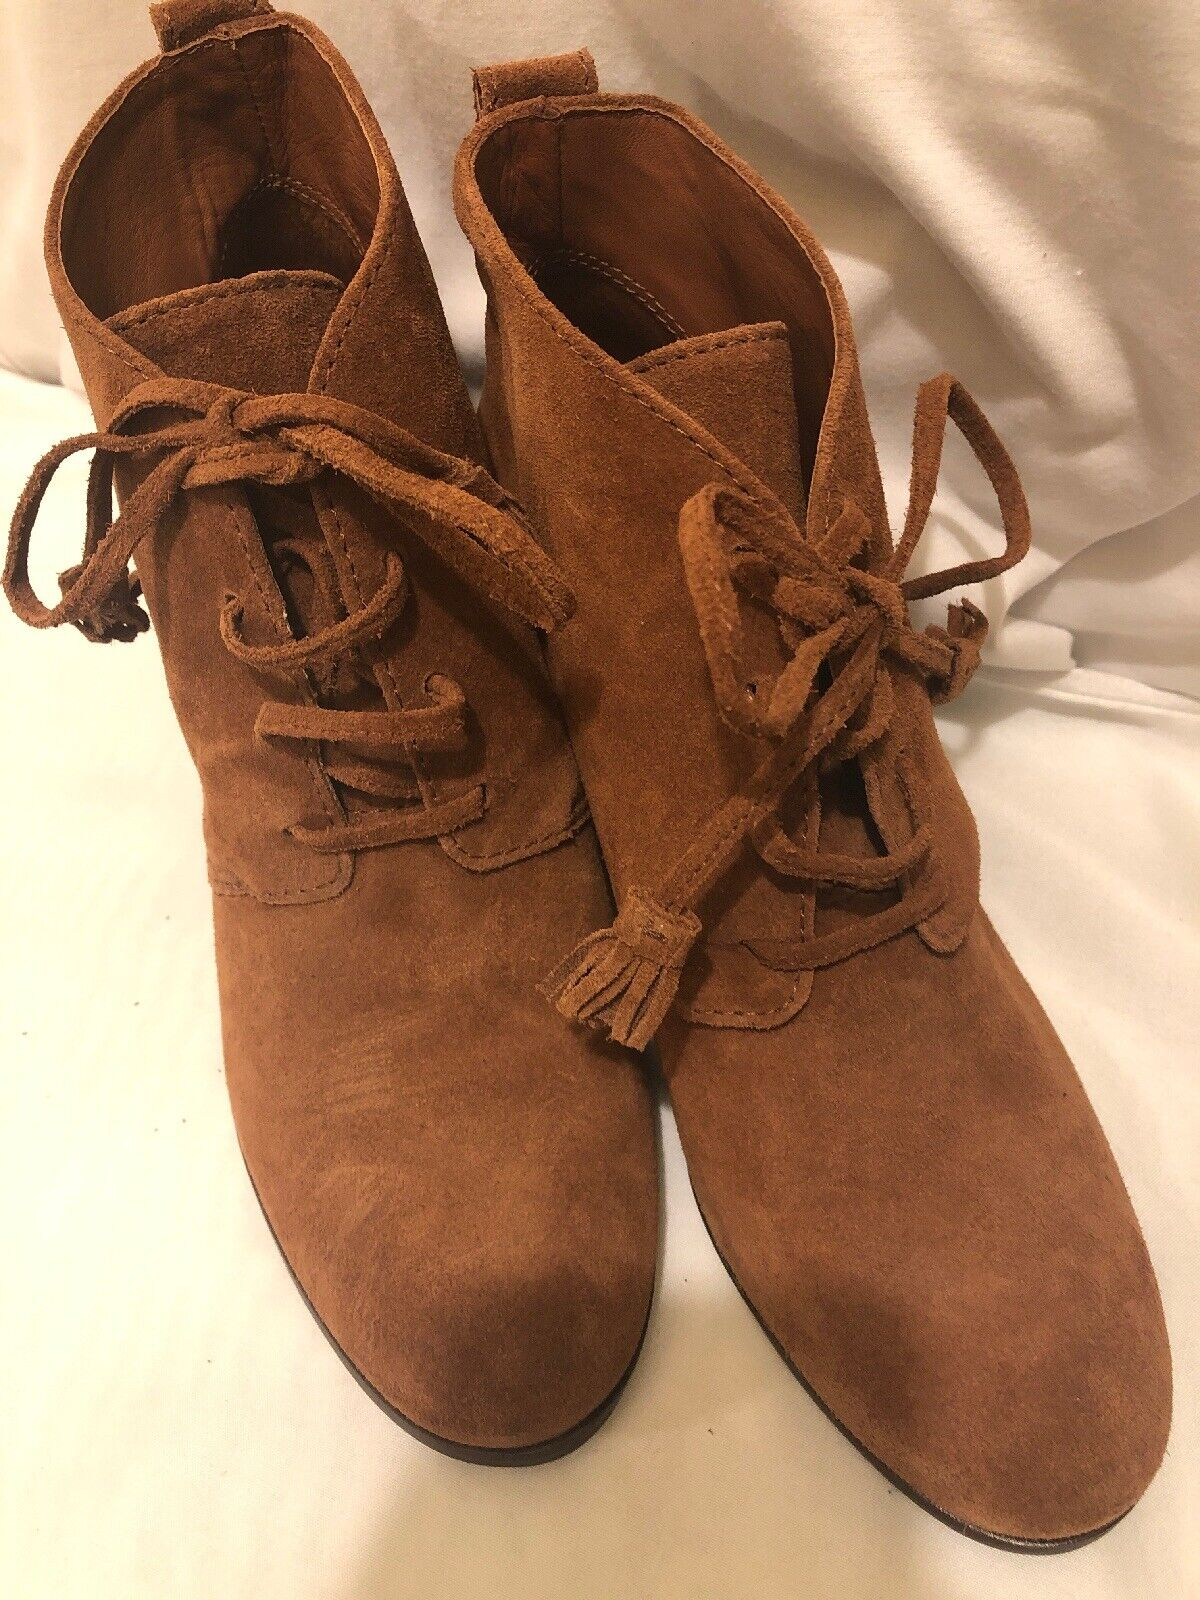 Nurture Booties Sz 9 Brown Suede Granny Boots Lace Up Moseley Bootie